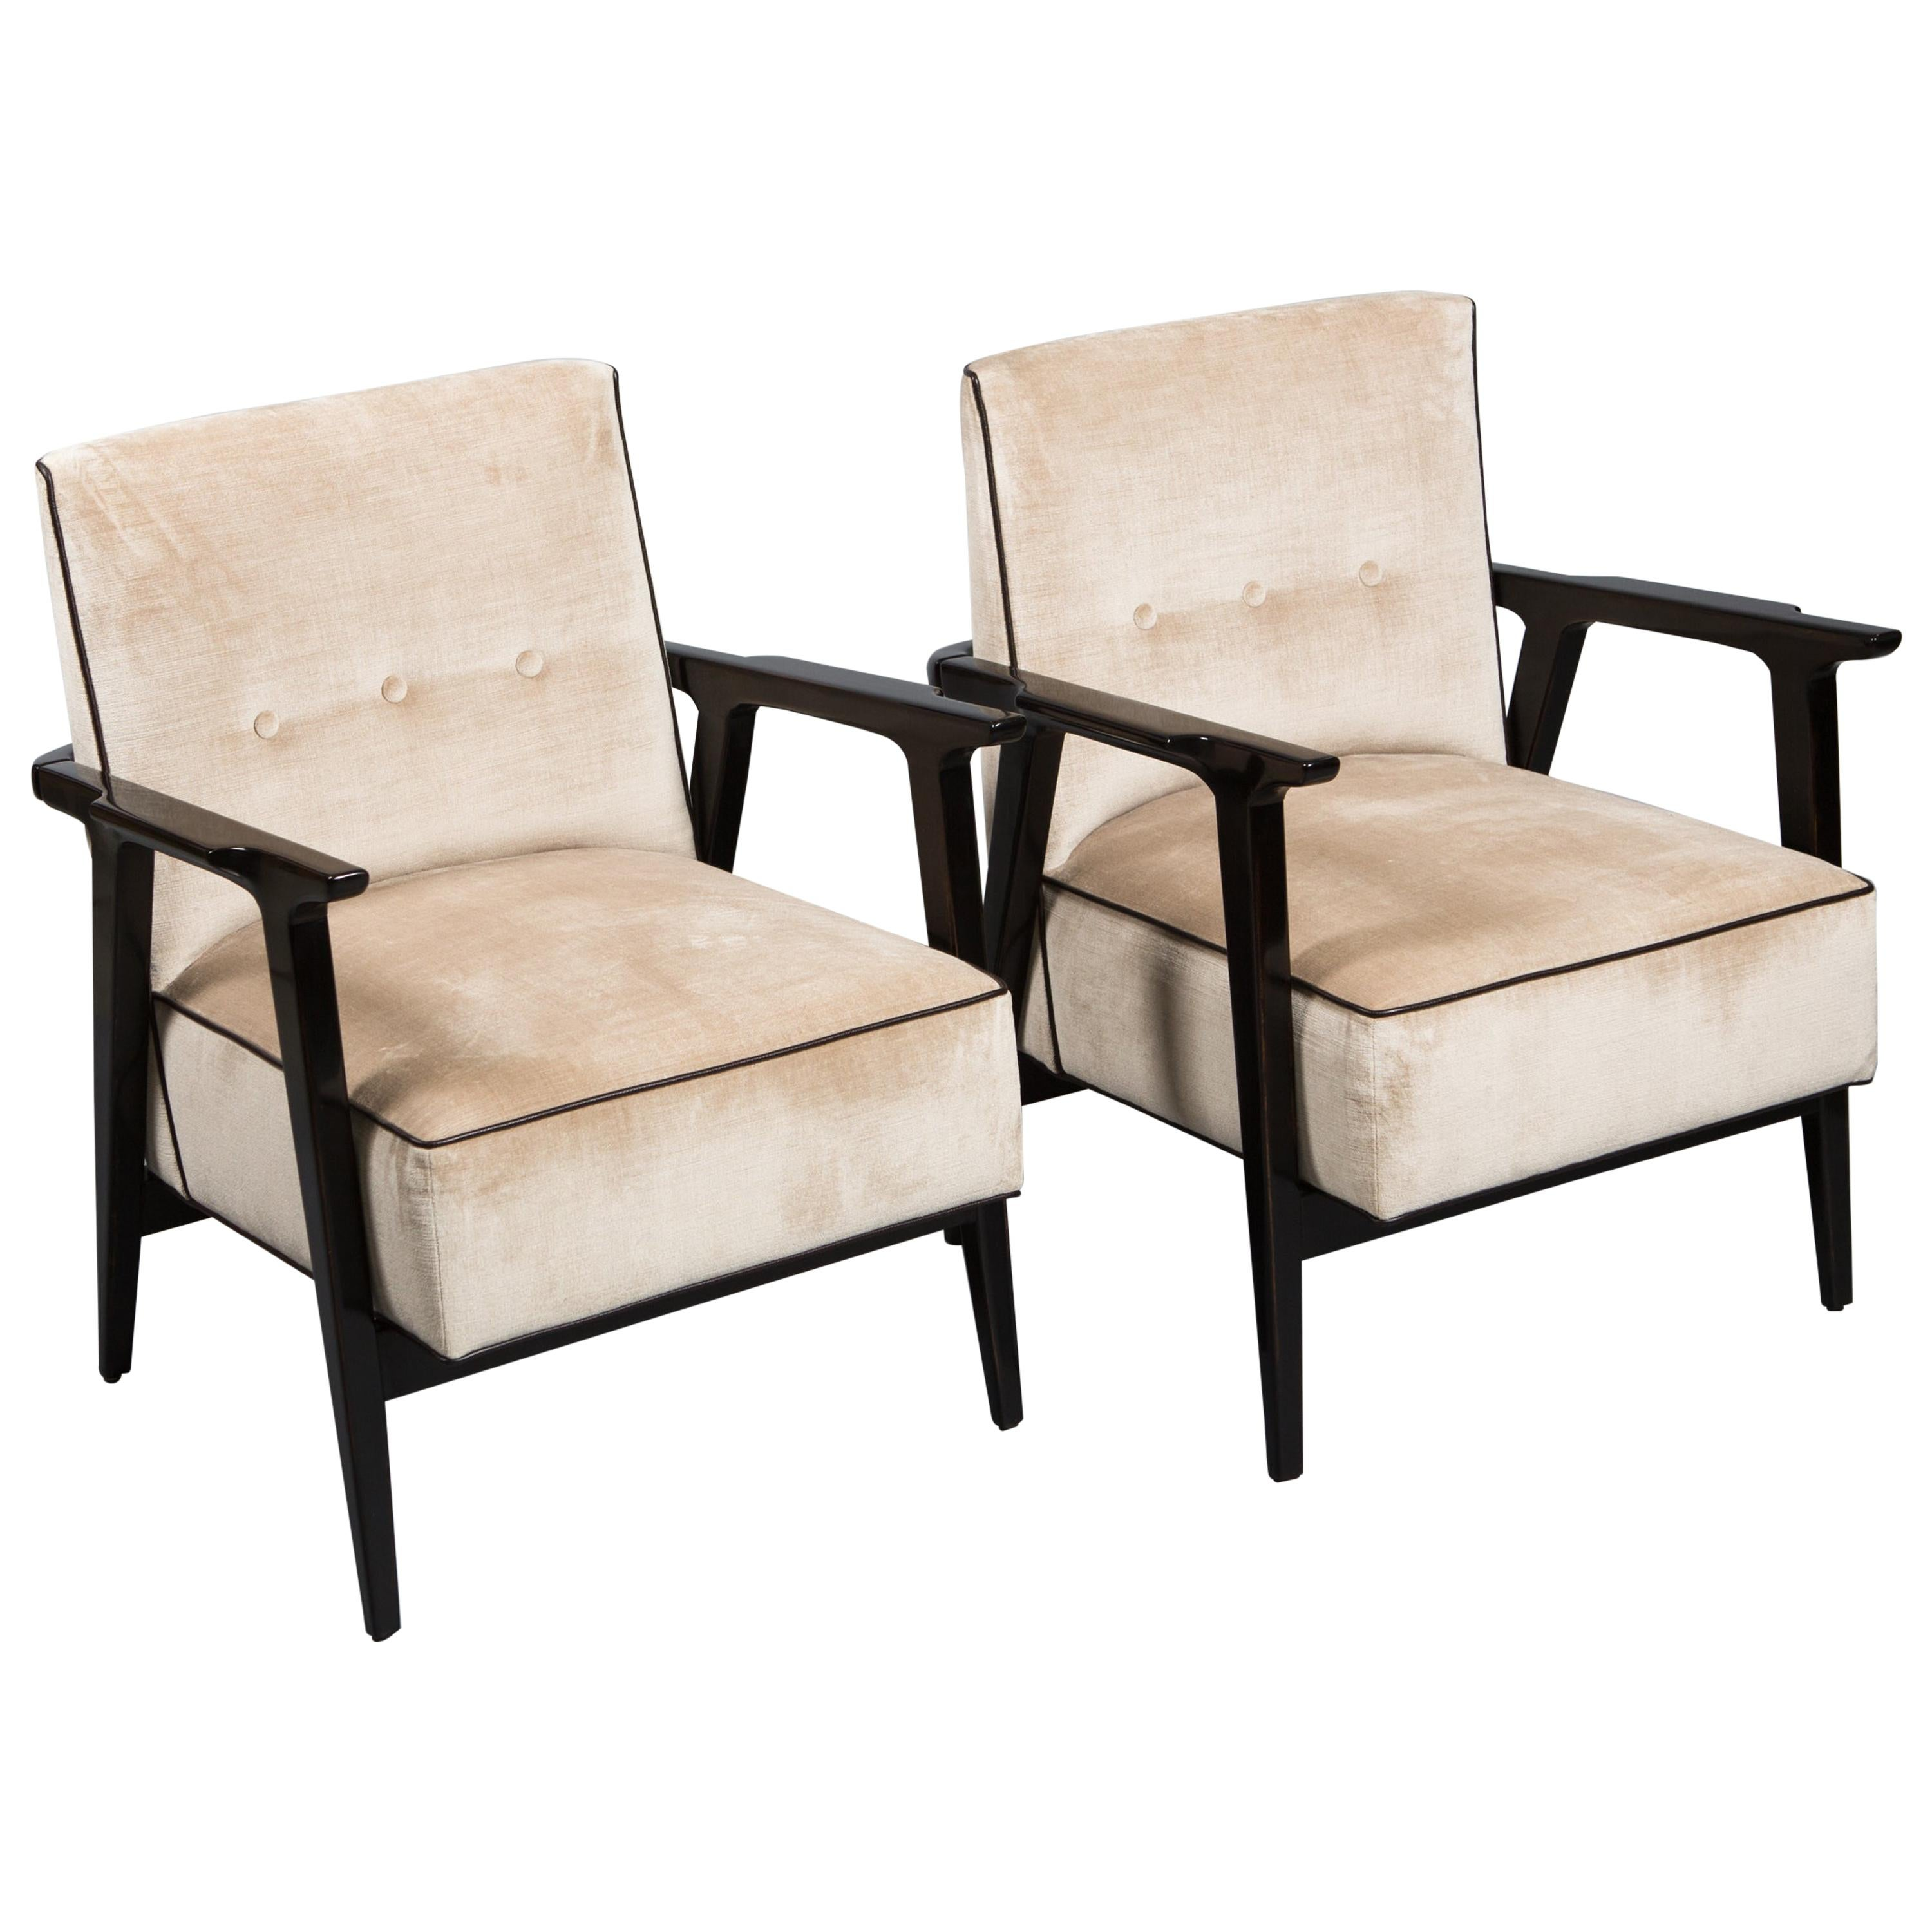 Pair of 1940s French Art Deco Armchairs